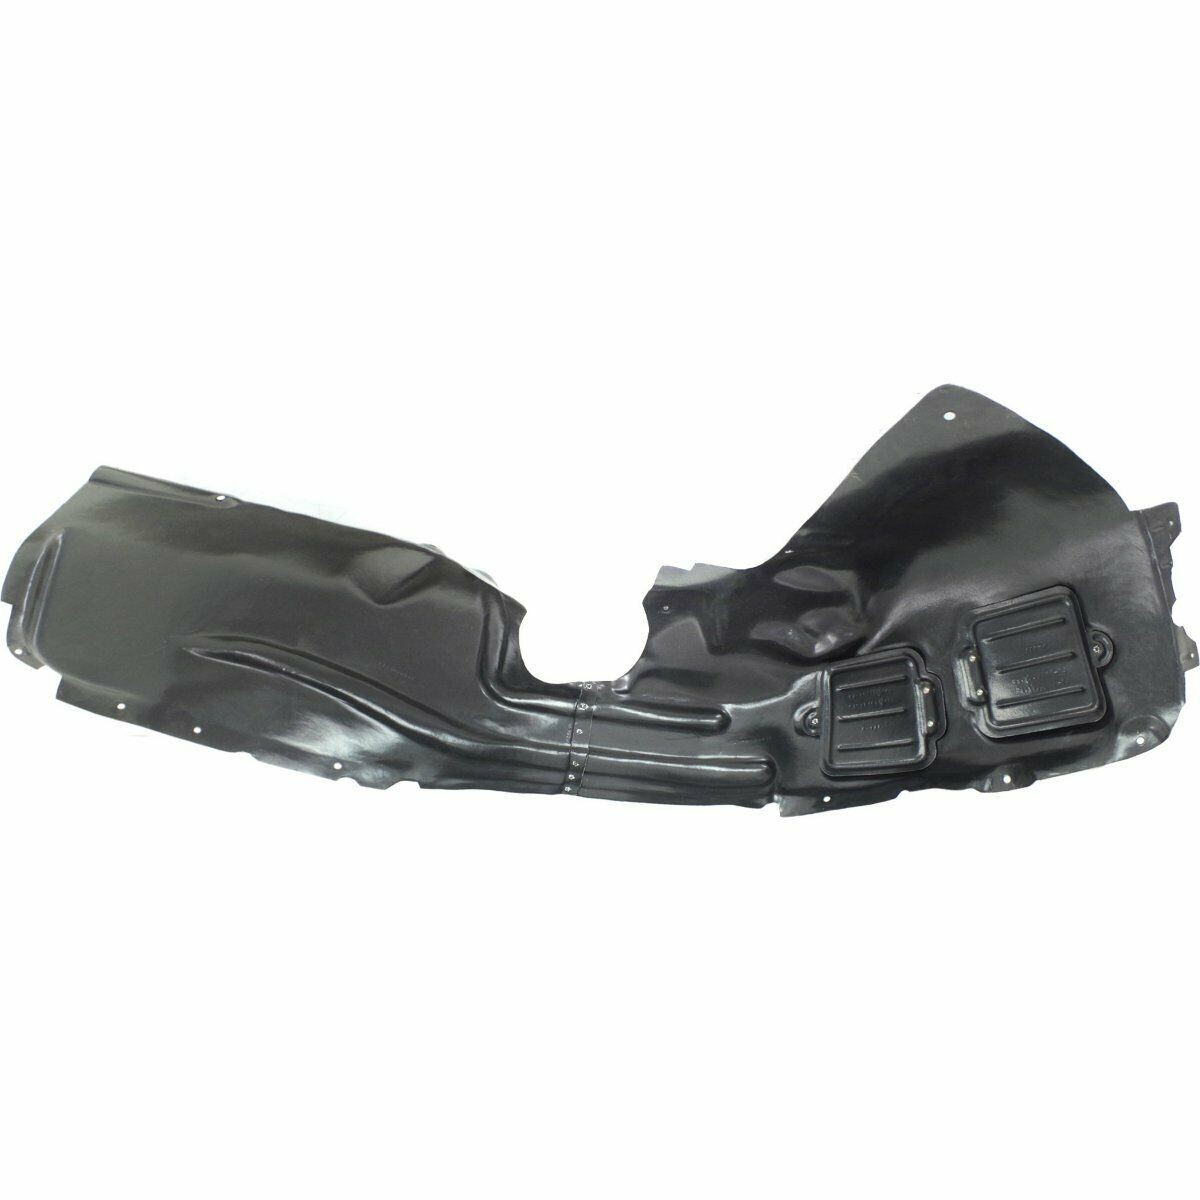 With Off Road Made Of PP Plastic CH1248162 68102265AF New Front Left Driver Side Fender Liner For 2014-2015 Jeep Cherokee With Black Flare